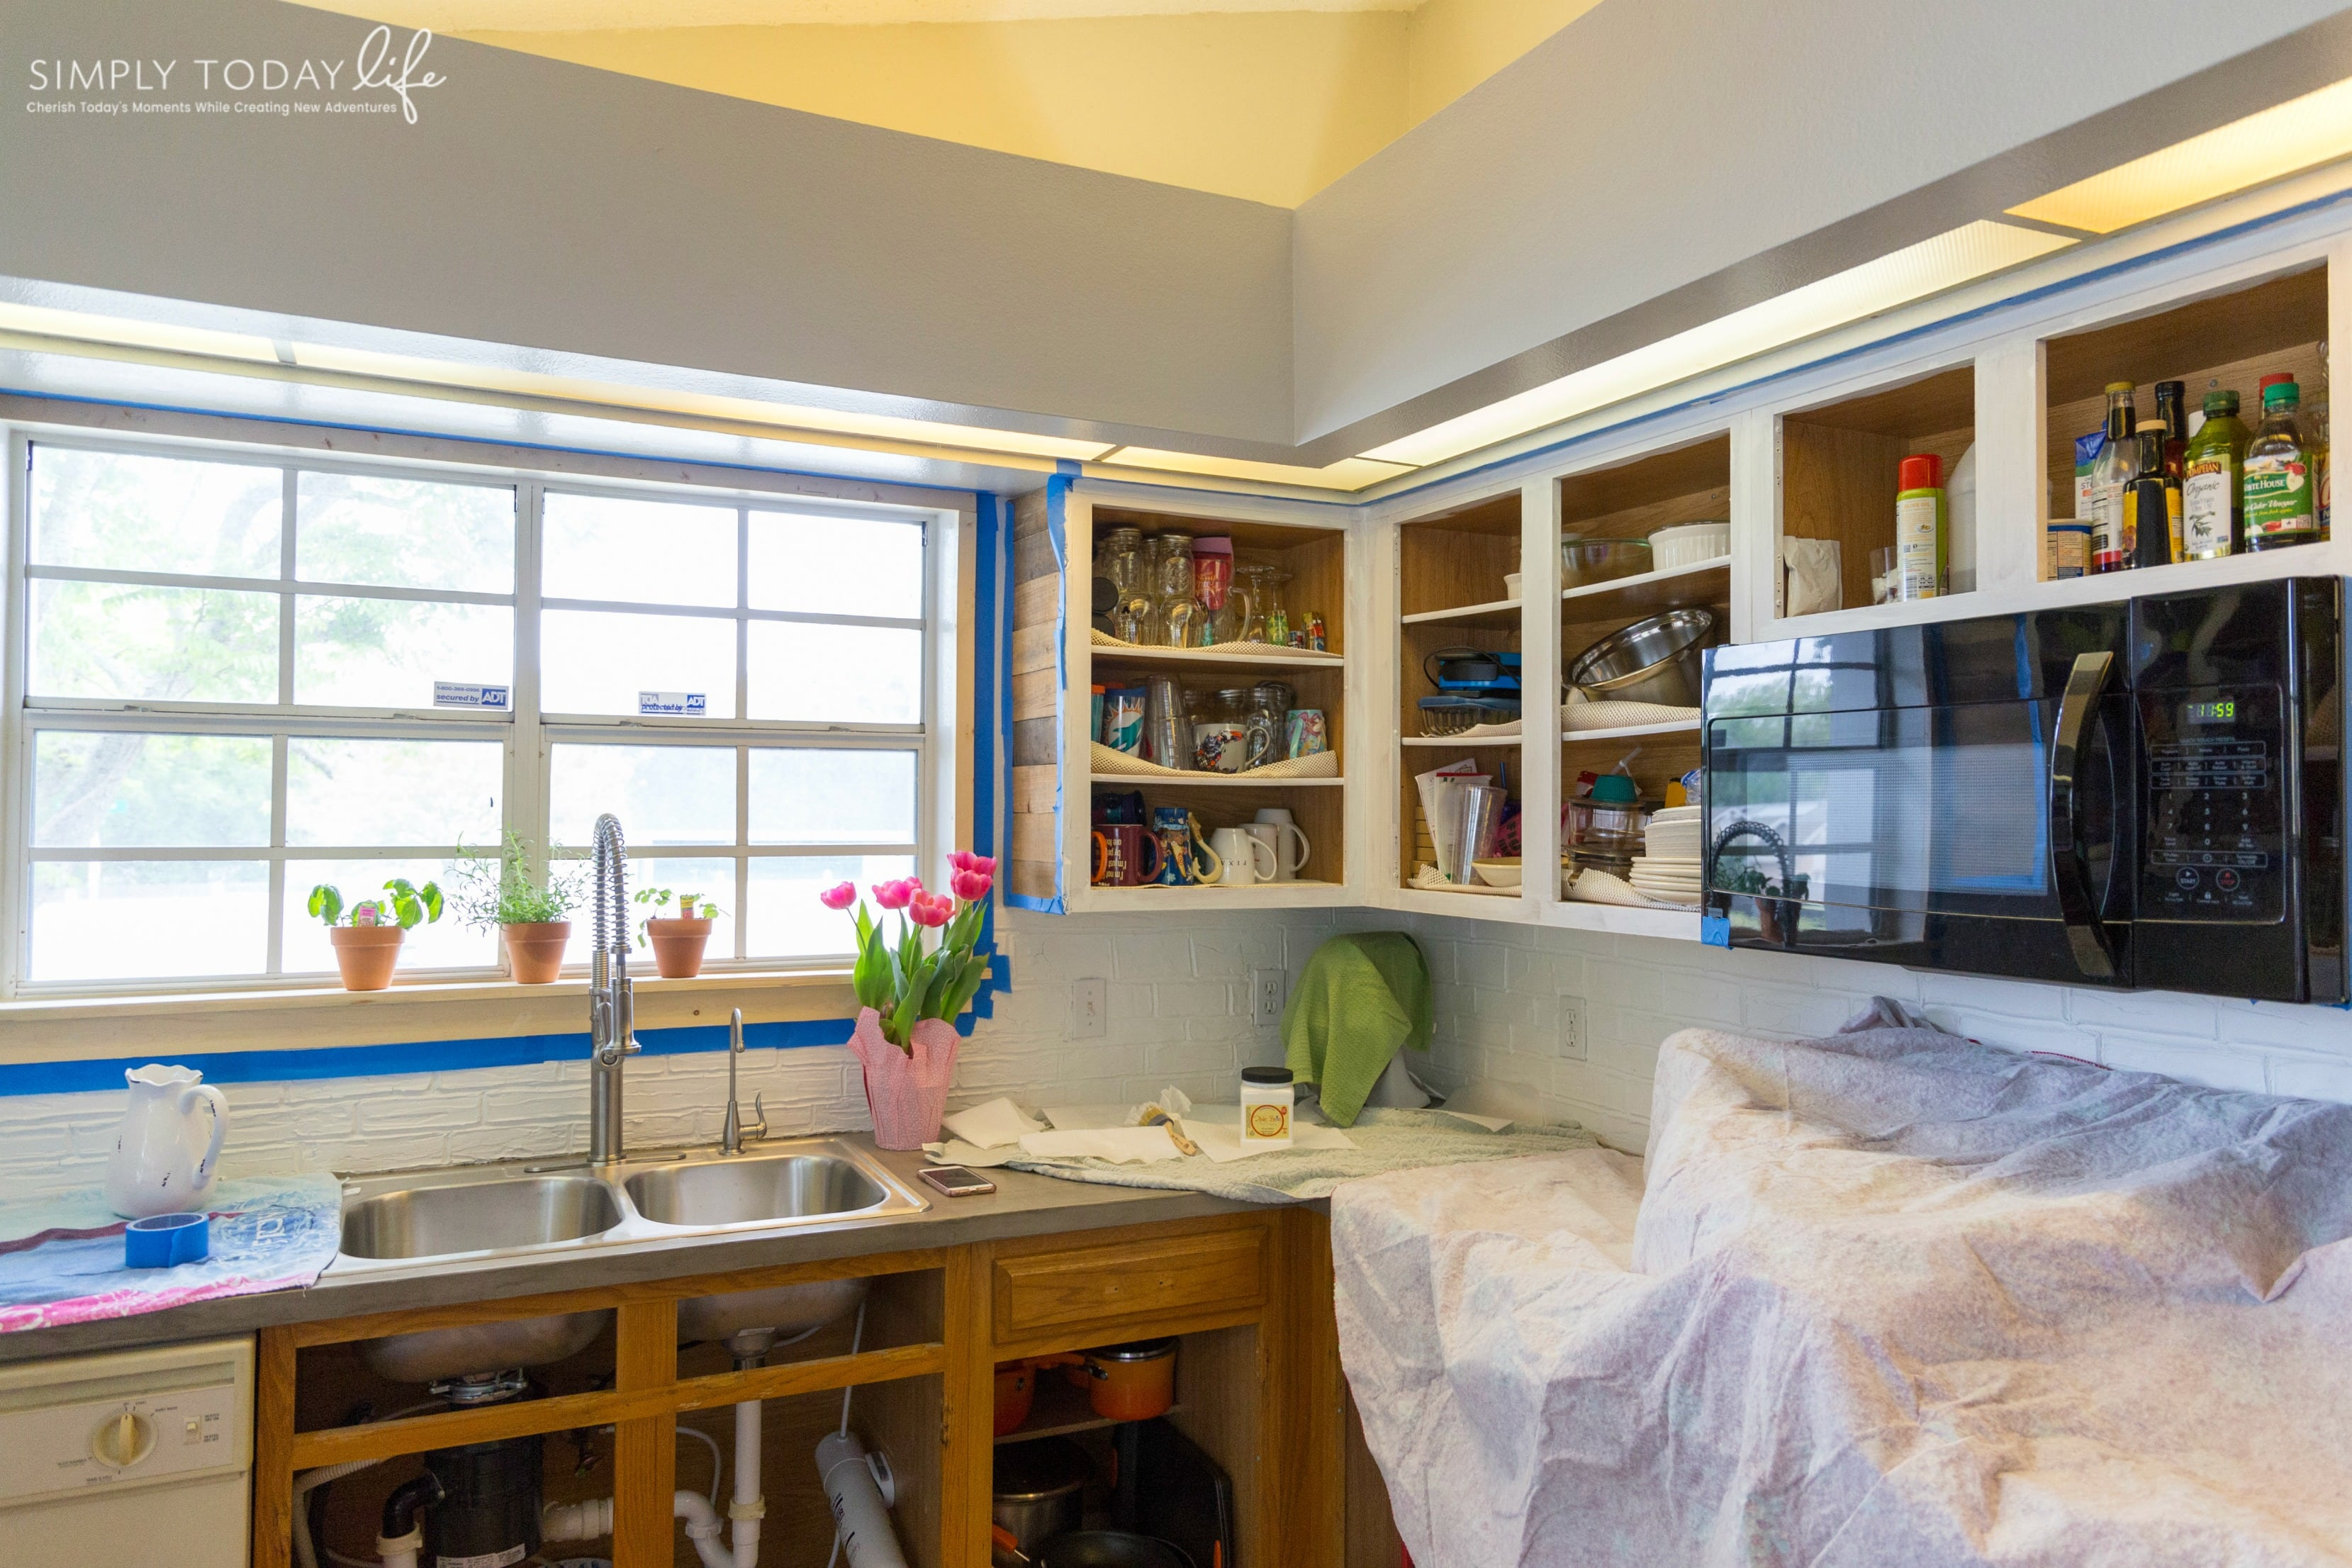 DIY panting kitchen cabinets with chalk paint - simplytodaylife.com.jpg